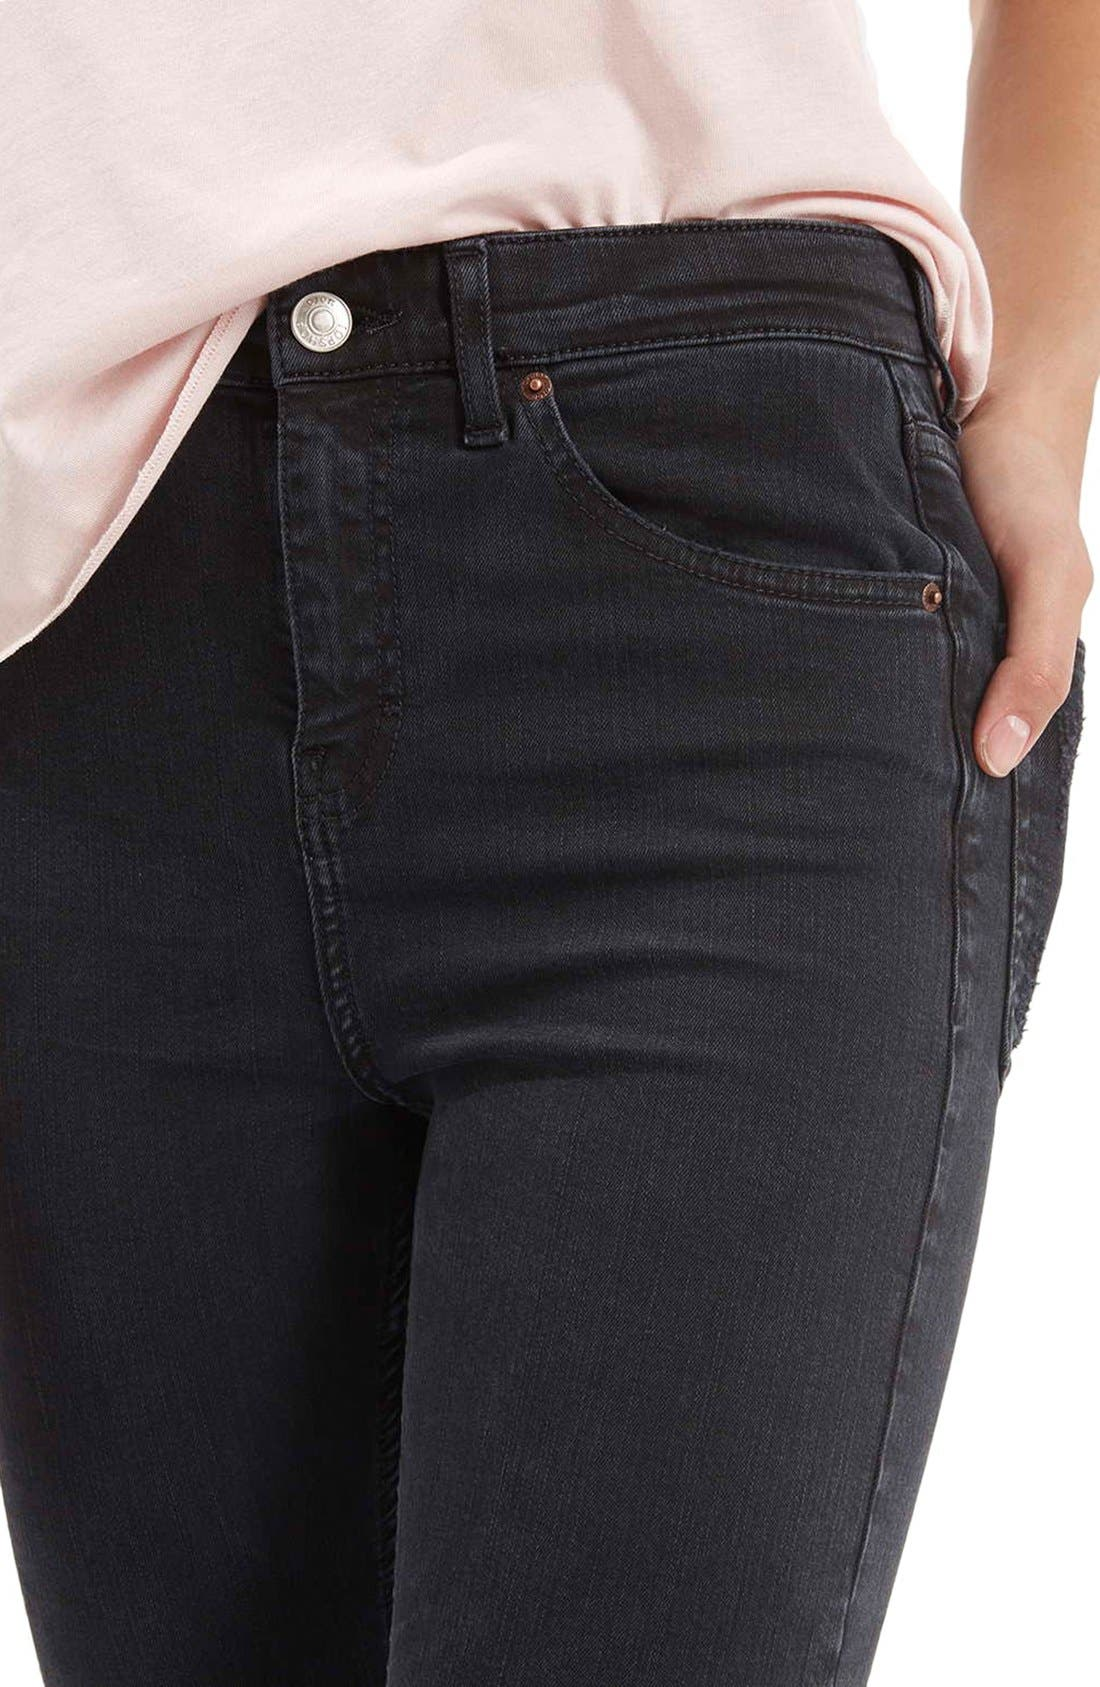 TOPSHOP,                             Moto 'Jamie' Ripped Skinny Jeans,                             Alternate thumbnail 4, color,                             001